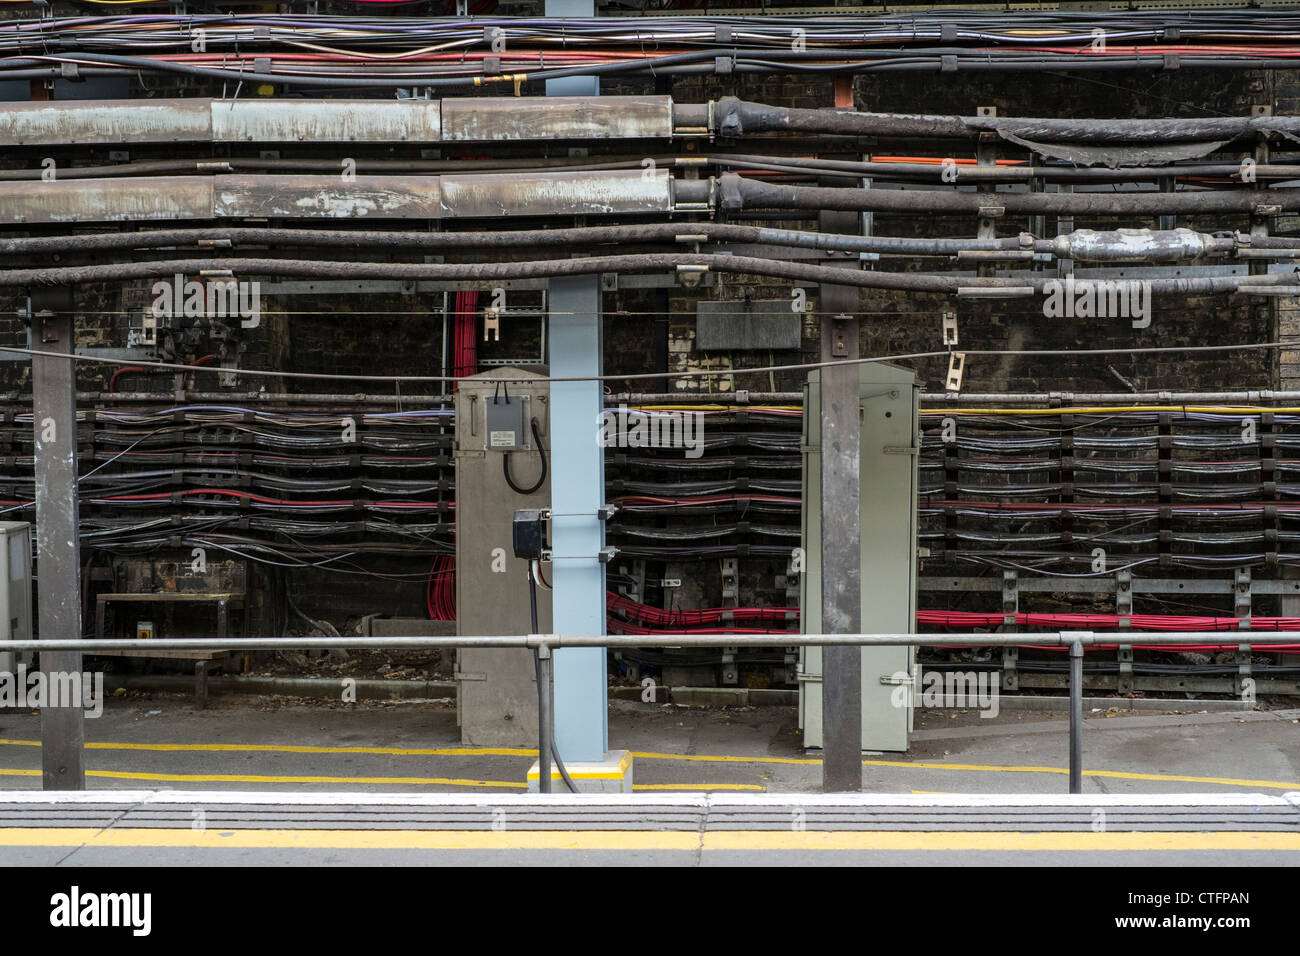 Cabling on the London Underground Train Transport Network. - Stock Image